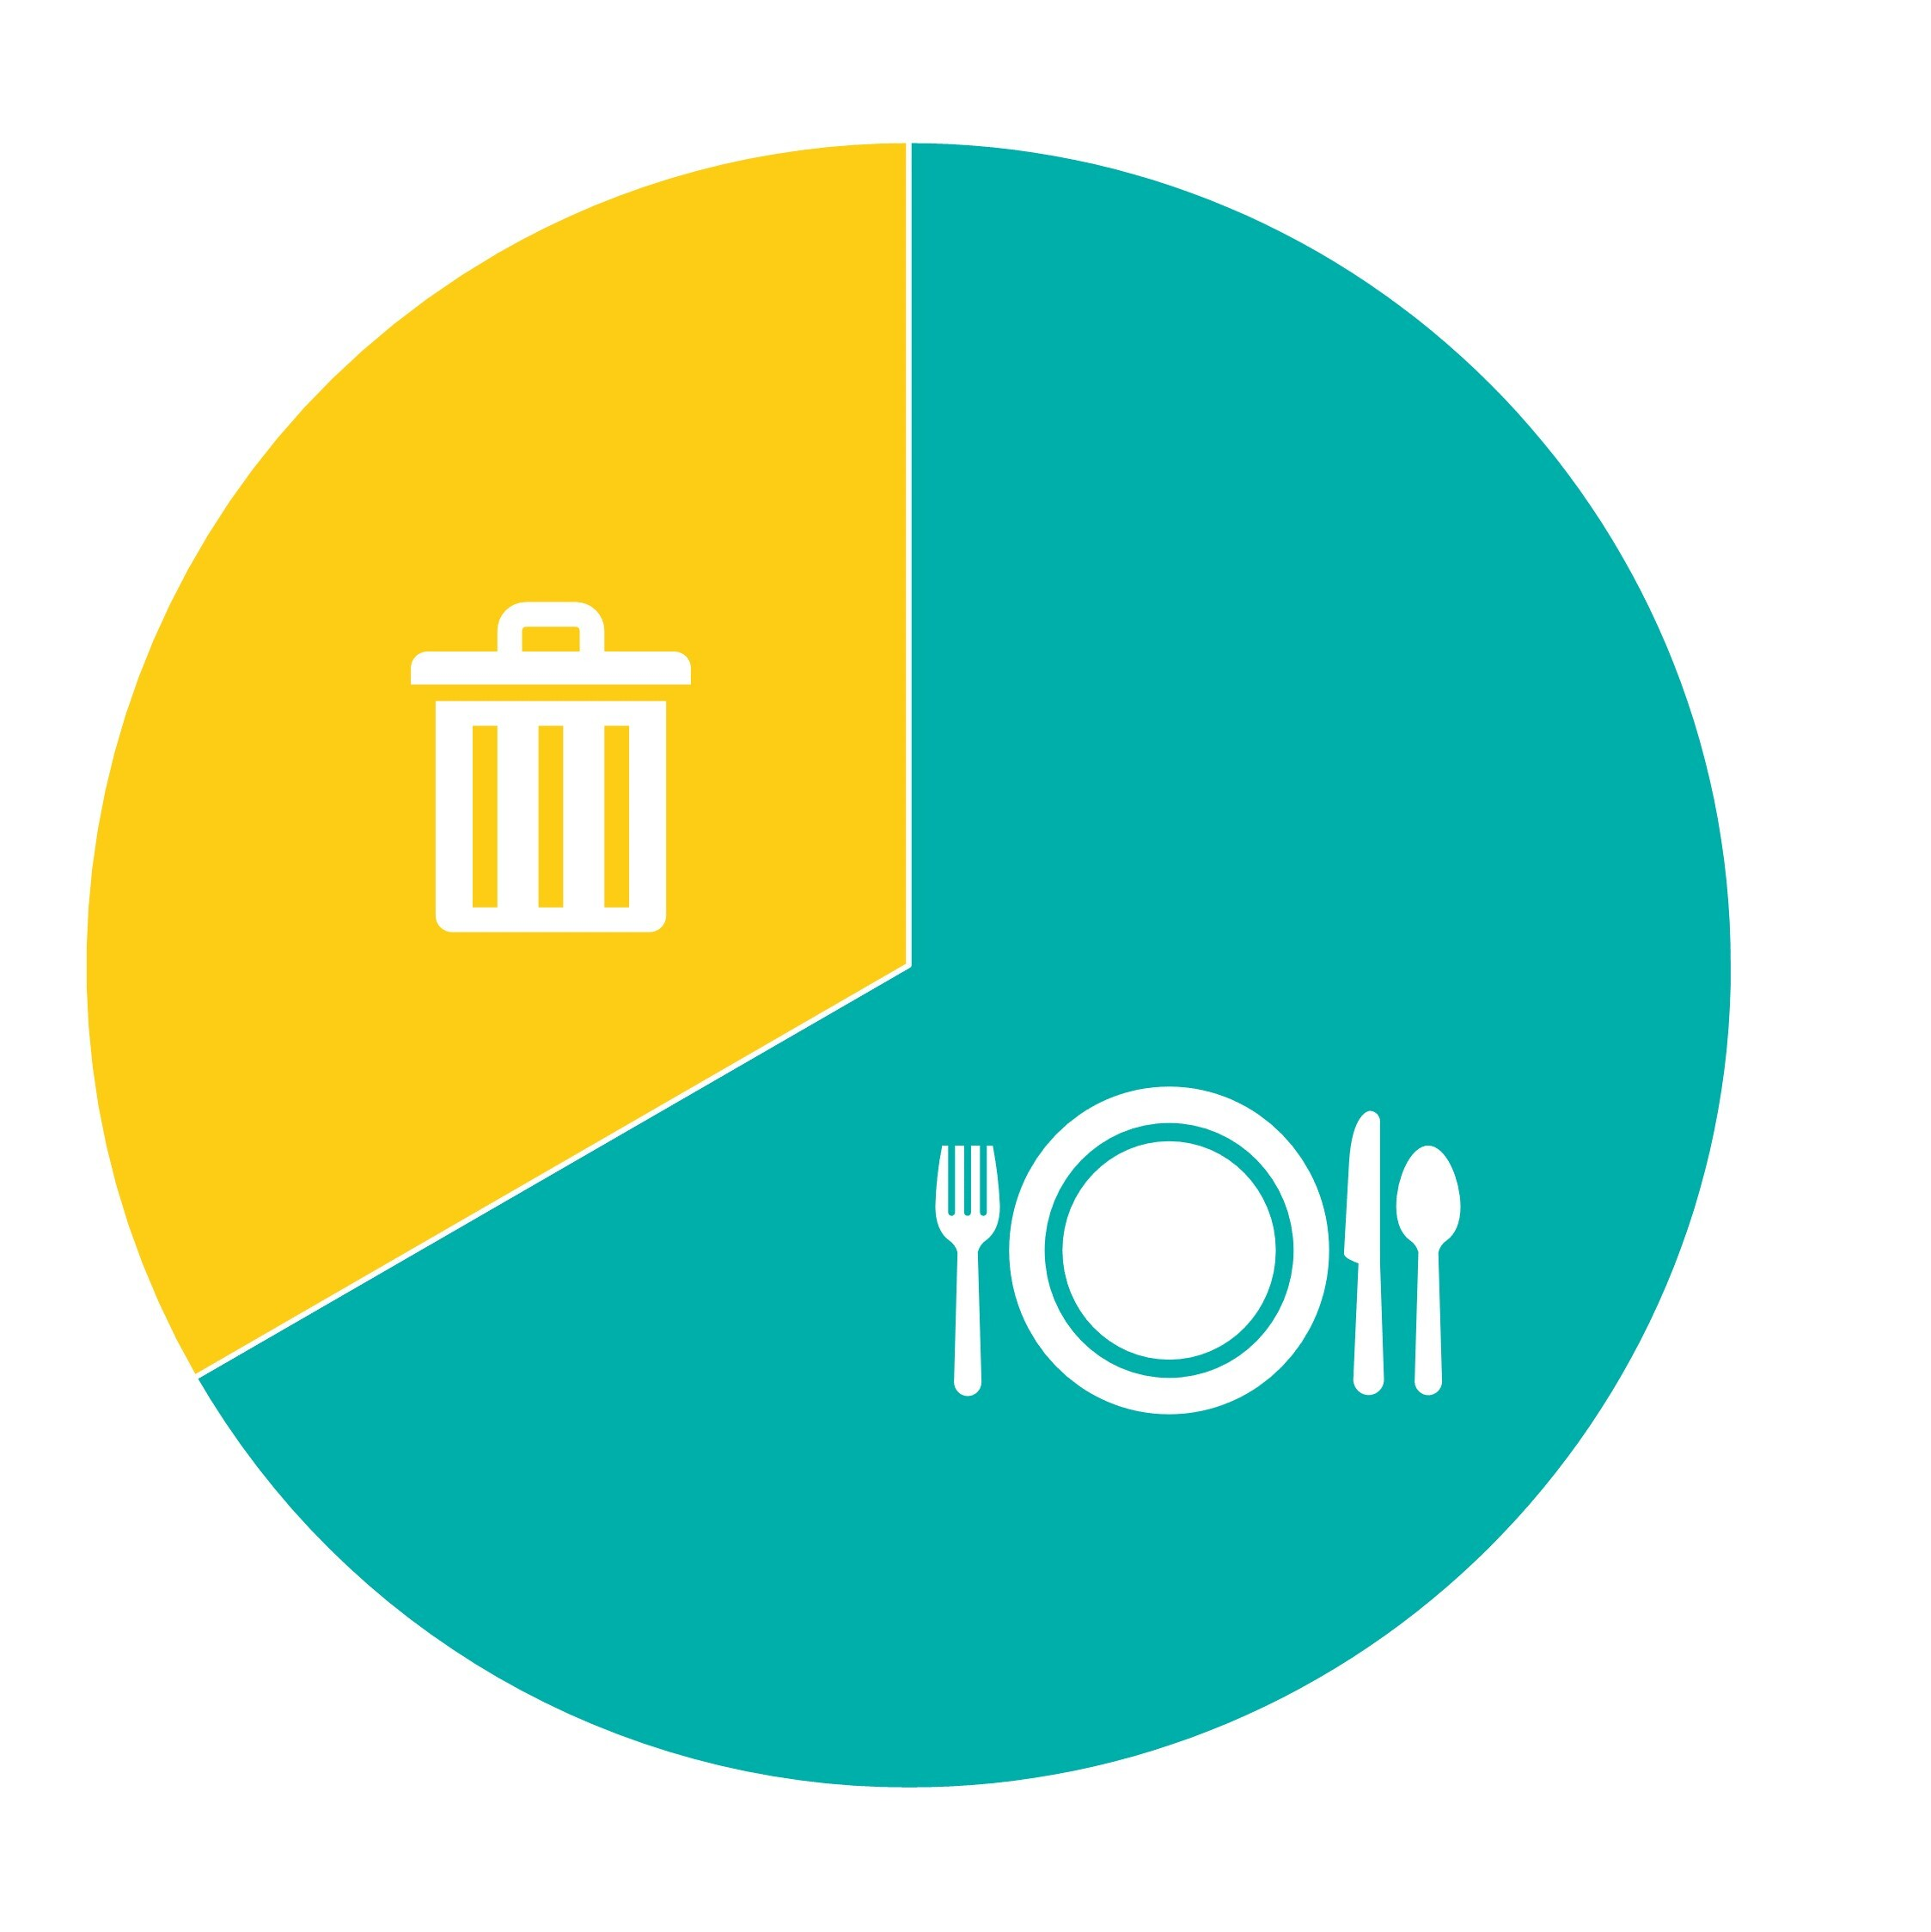 A pie chart with two thirds in blue representing what we eat, and one third in yellow representing what we throw away